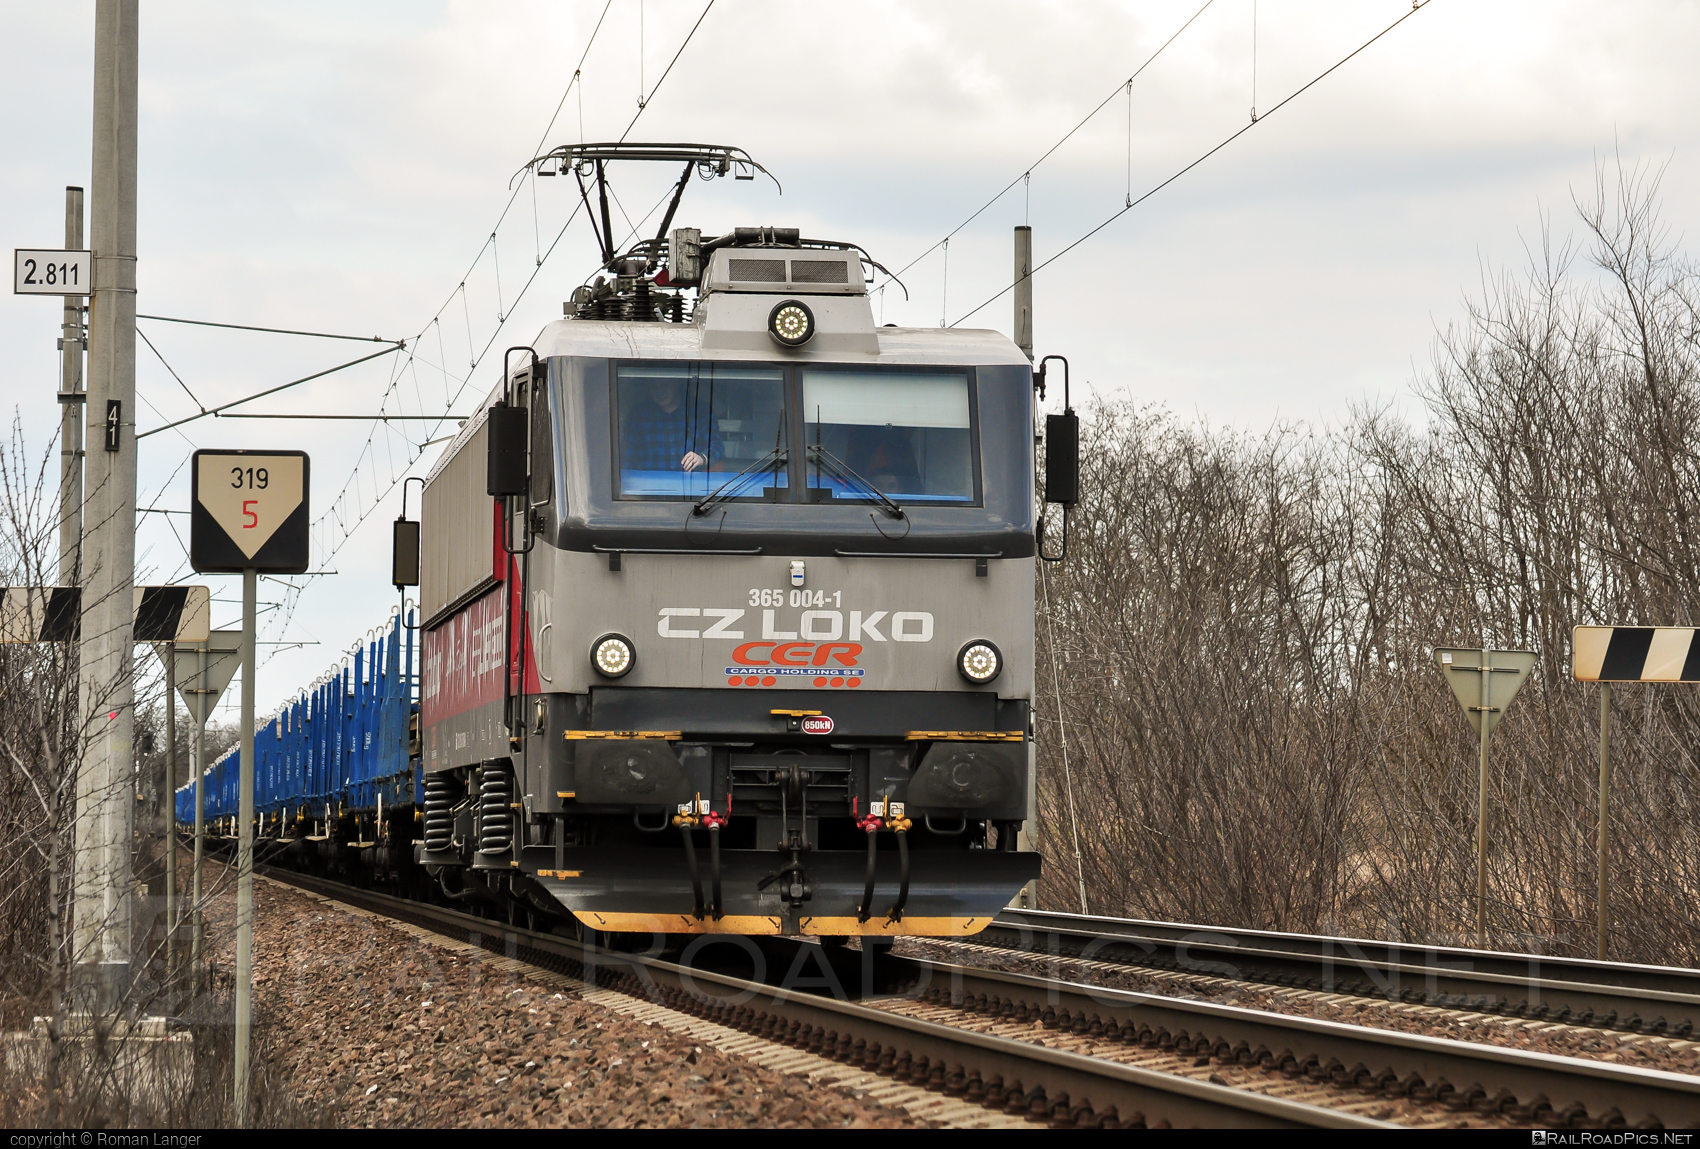 CZ LOKO EffiLiner 3000 - 365 004-1 operated by CER Slovakia a.s. #belgicanka #cer #cersk #cerslovakia #cerslovakiaas #czloko #czlokoas #effiliner #effiliner3000 #sncb12 #sncbclass12